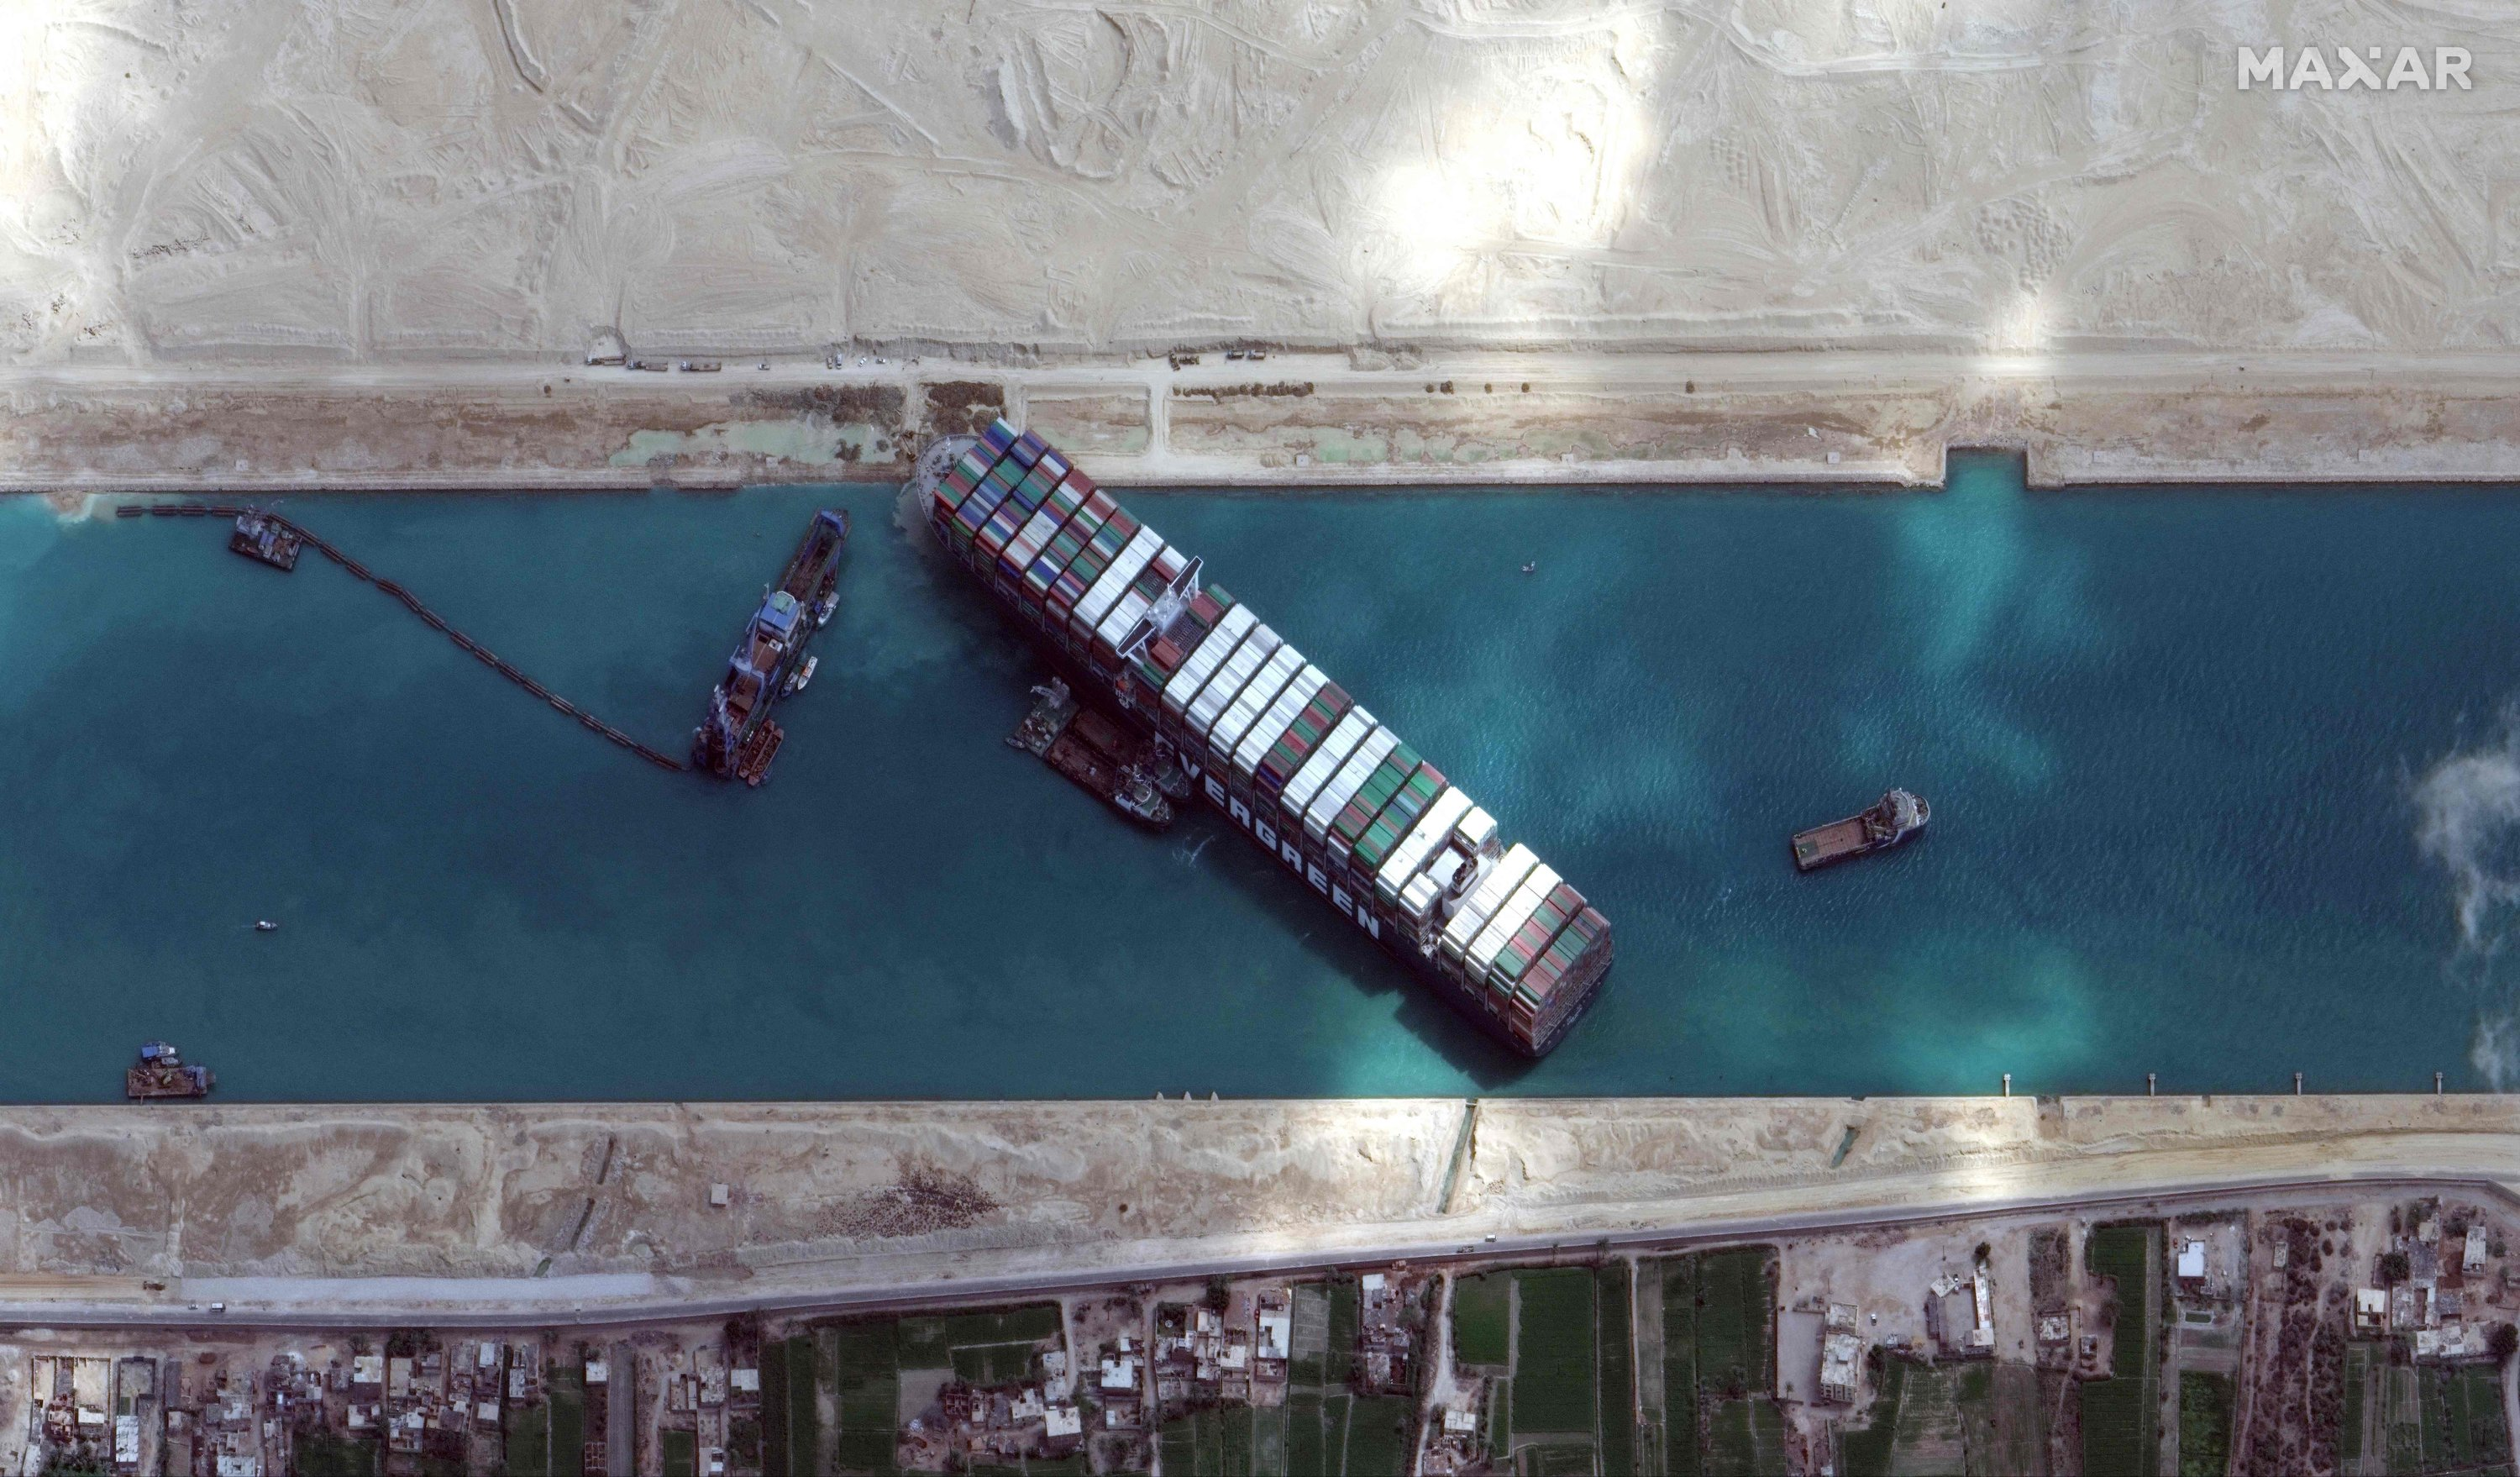 This file satellite imagery released by Maxar Technologies shows the MV Ever Given container ship wedged in the Suez Canal on the morning of March 28, 2021. (AFP Photo / Satellite image 2021 Maxar Technologies)